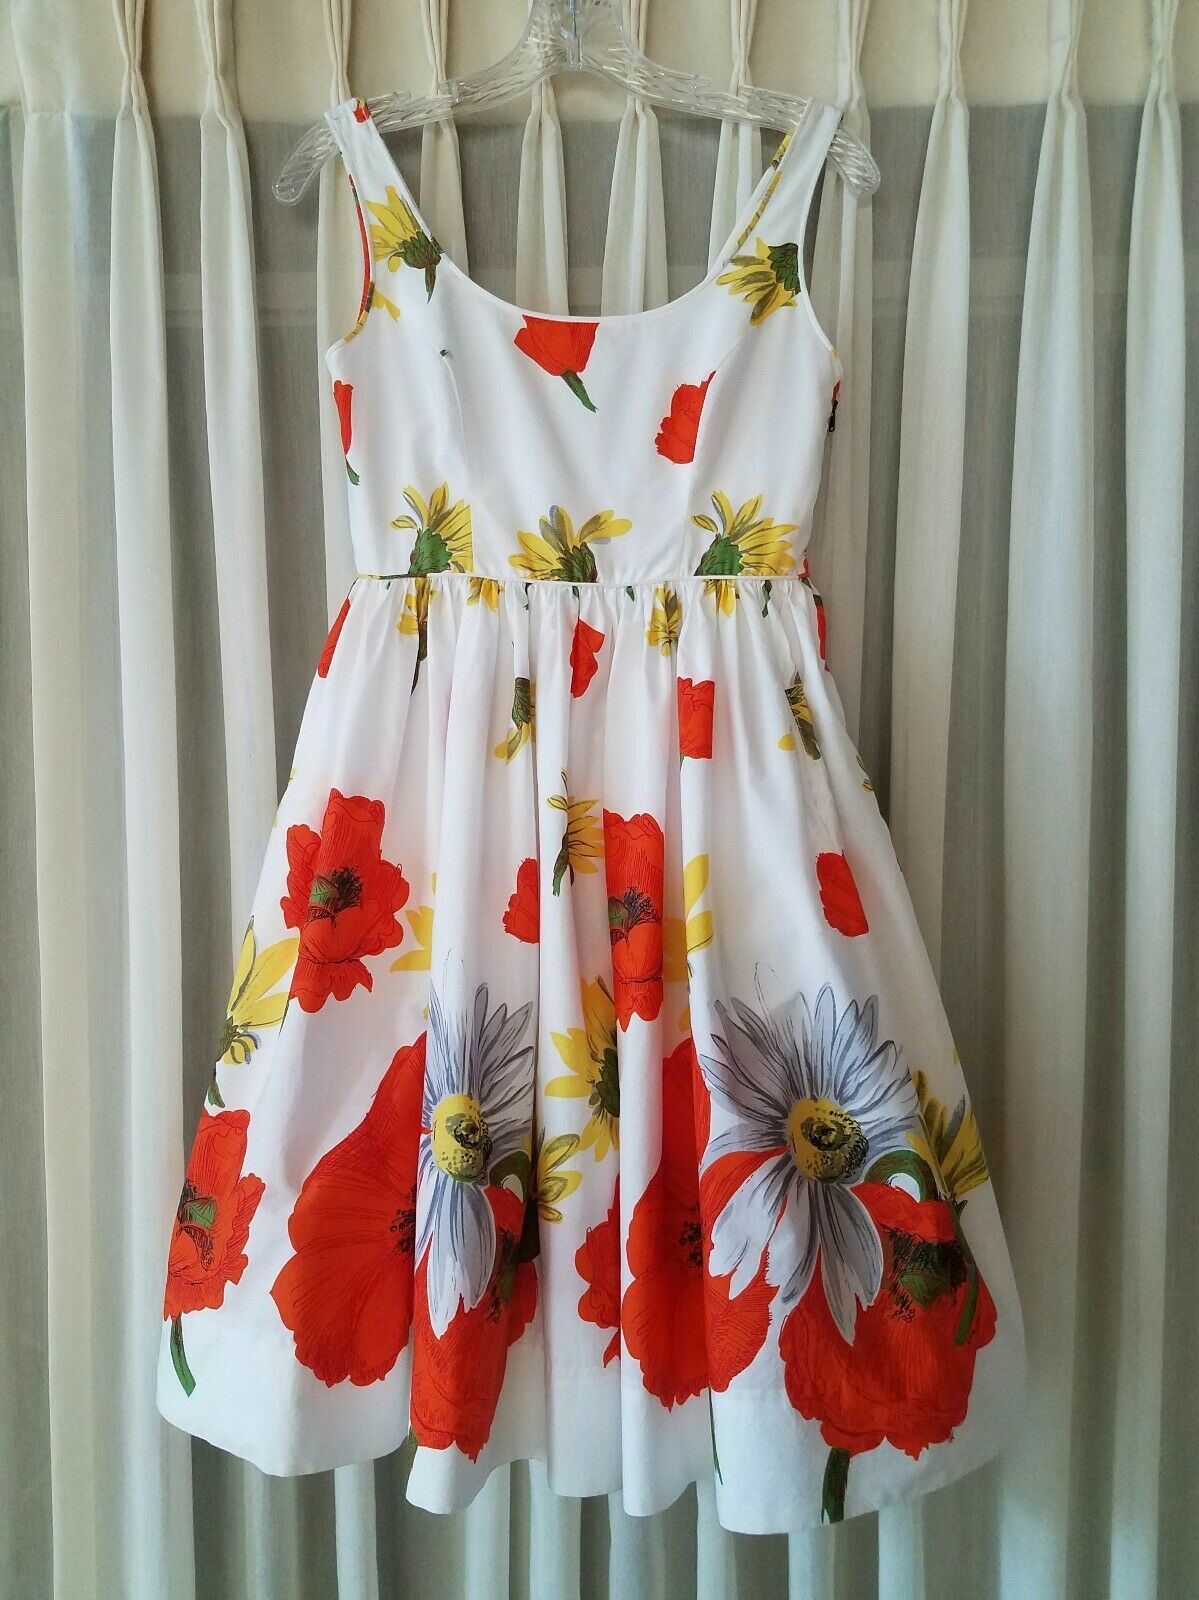 Anthropologie Moulinette Soeurs Homegrown Poppies Fit Flare Dress 0 XS EUC